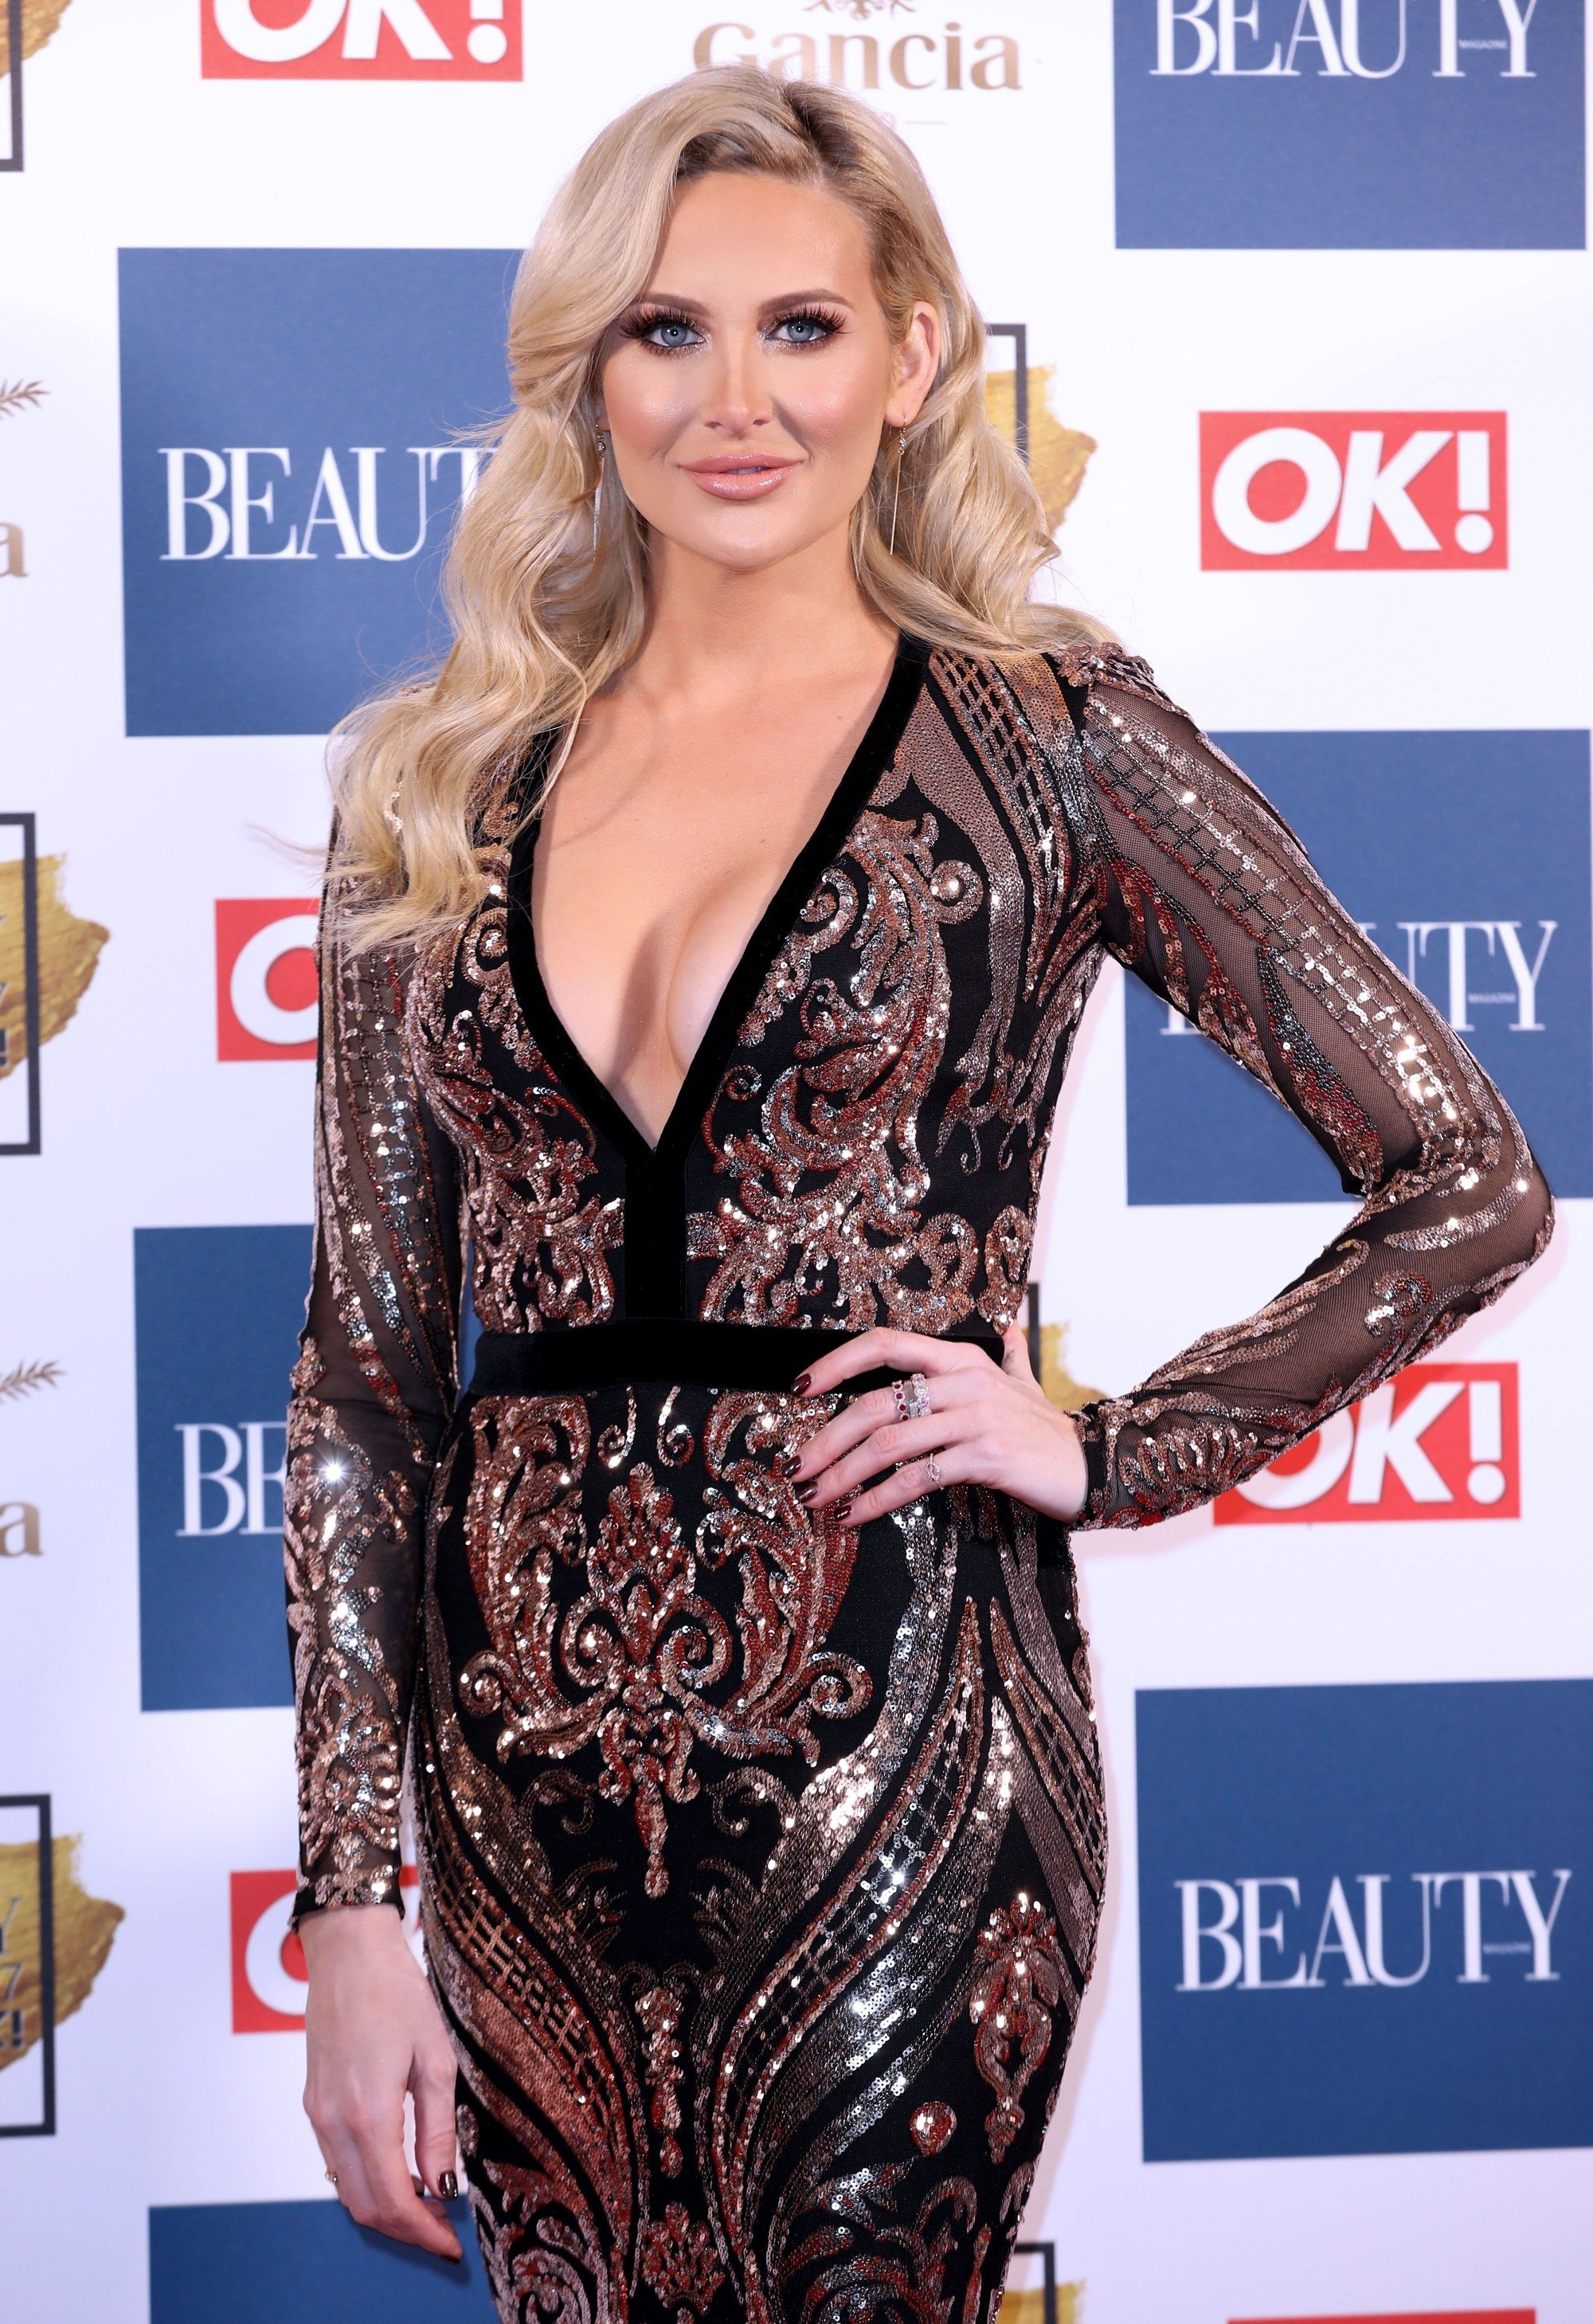 close up shot of stephanie pratt on the ok beauty awards red carpet with glam waves hairstyle, wearing sequin dress